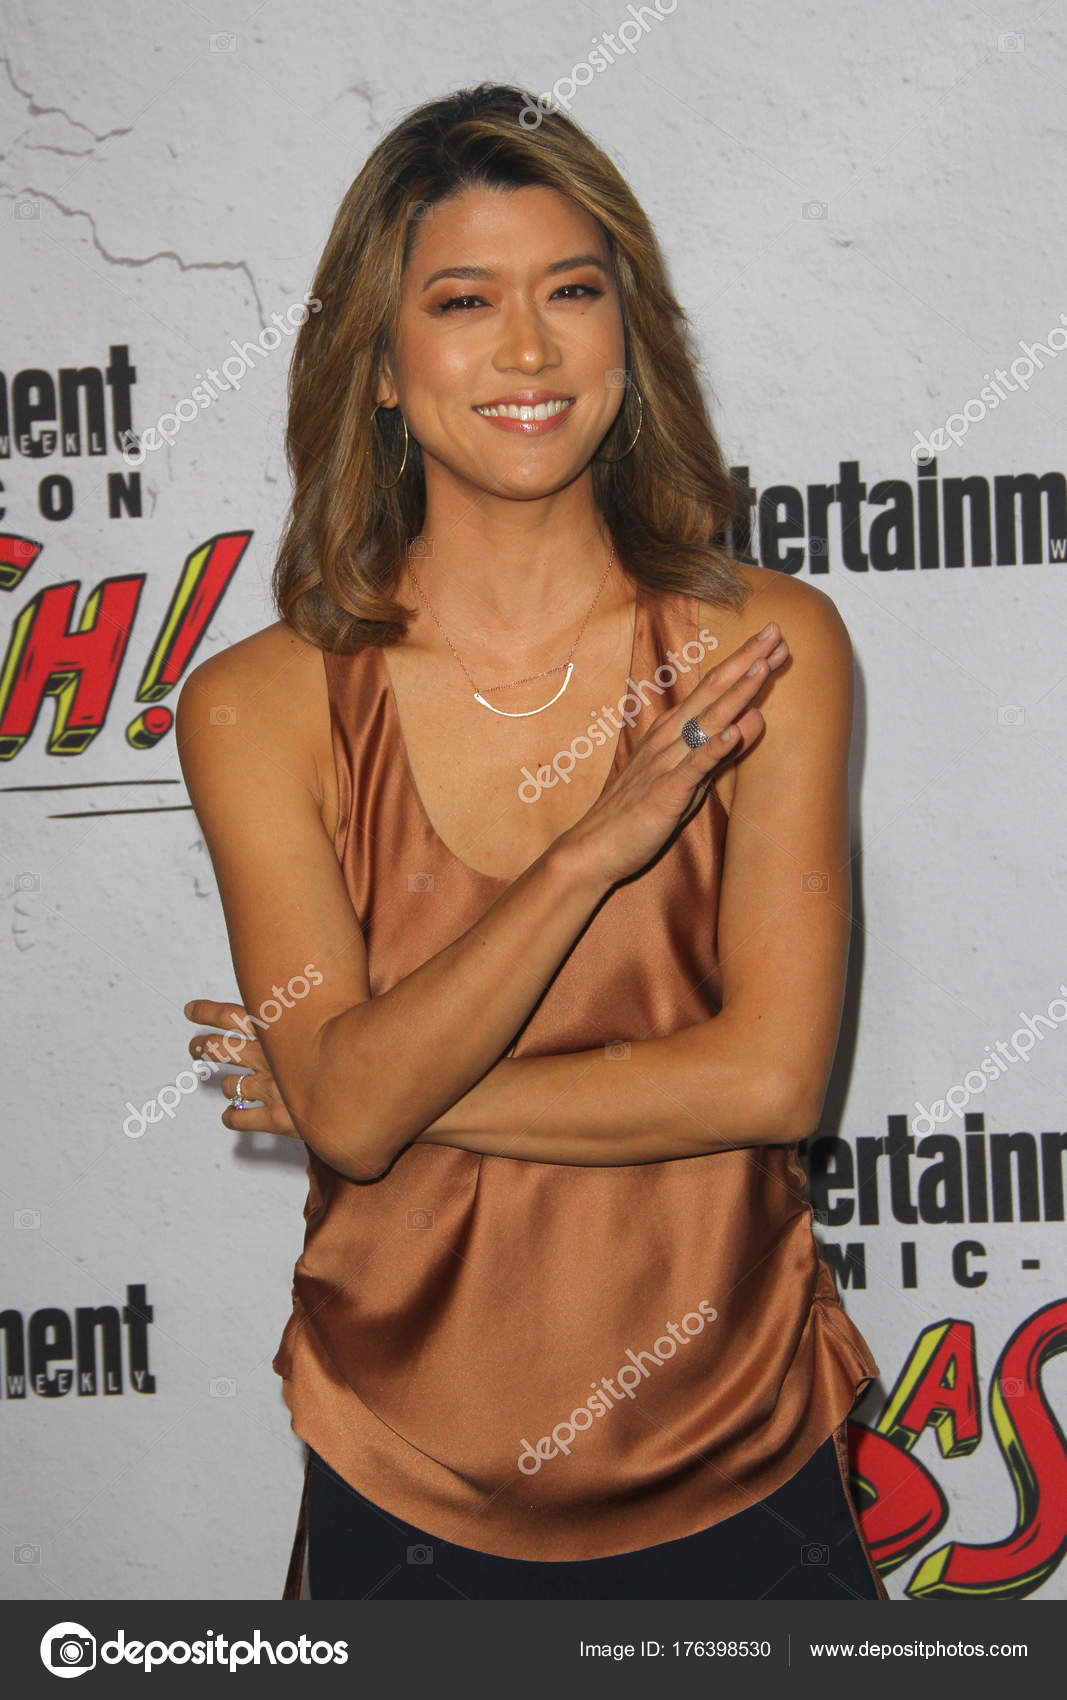 Forum on this topic: Kathy Coleman, grace-park-actress/